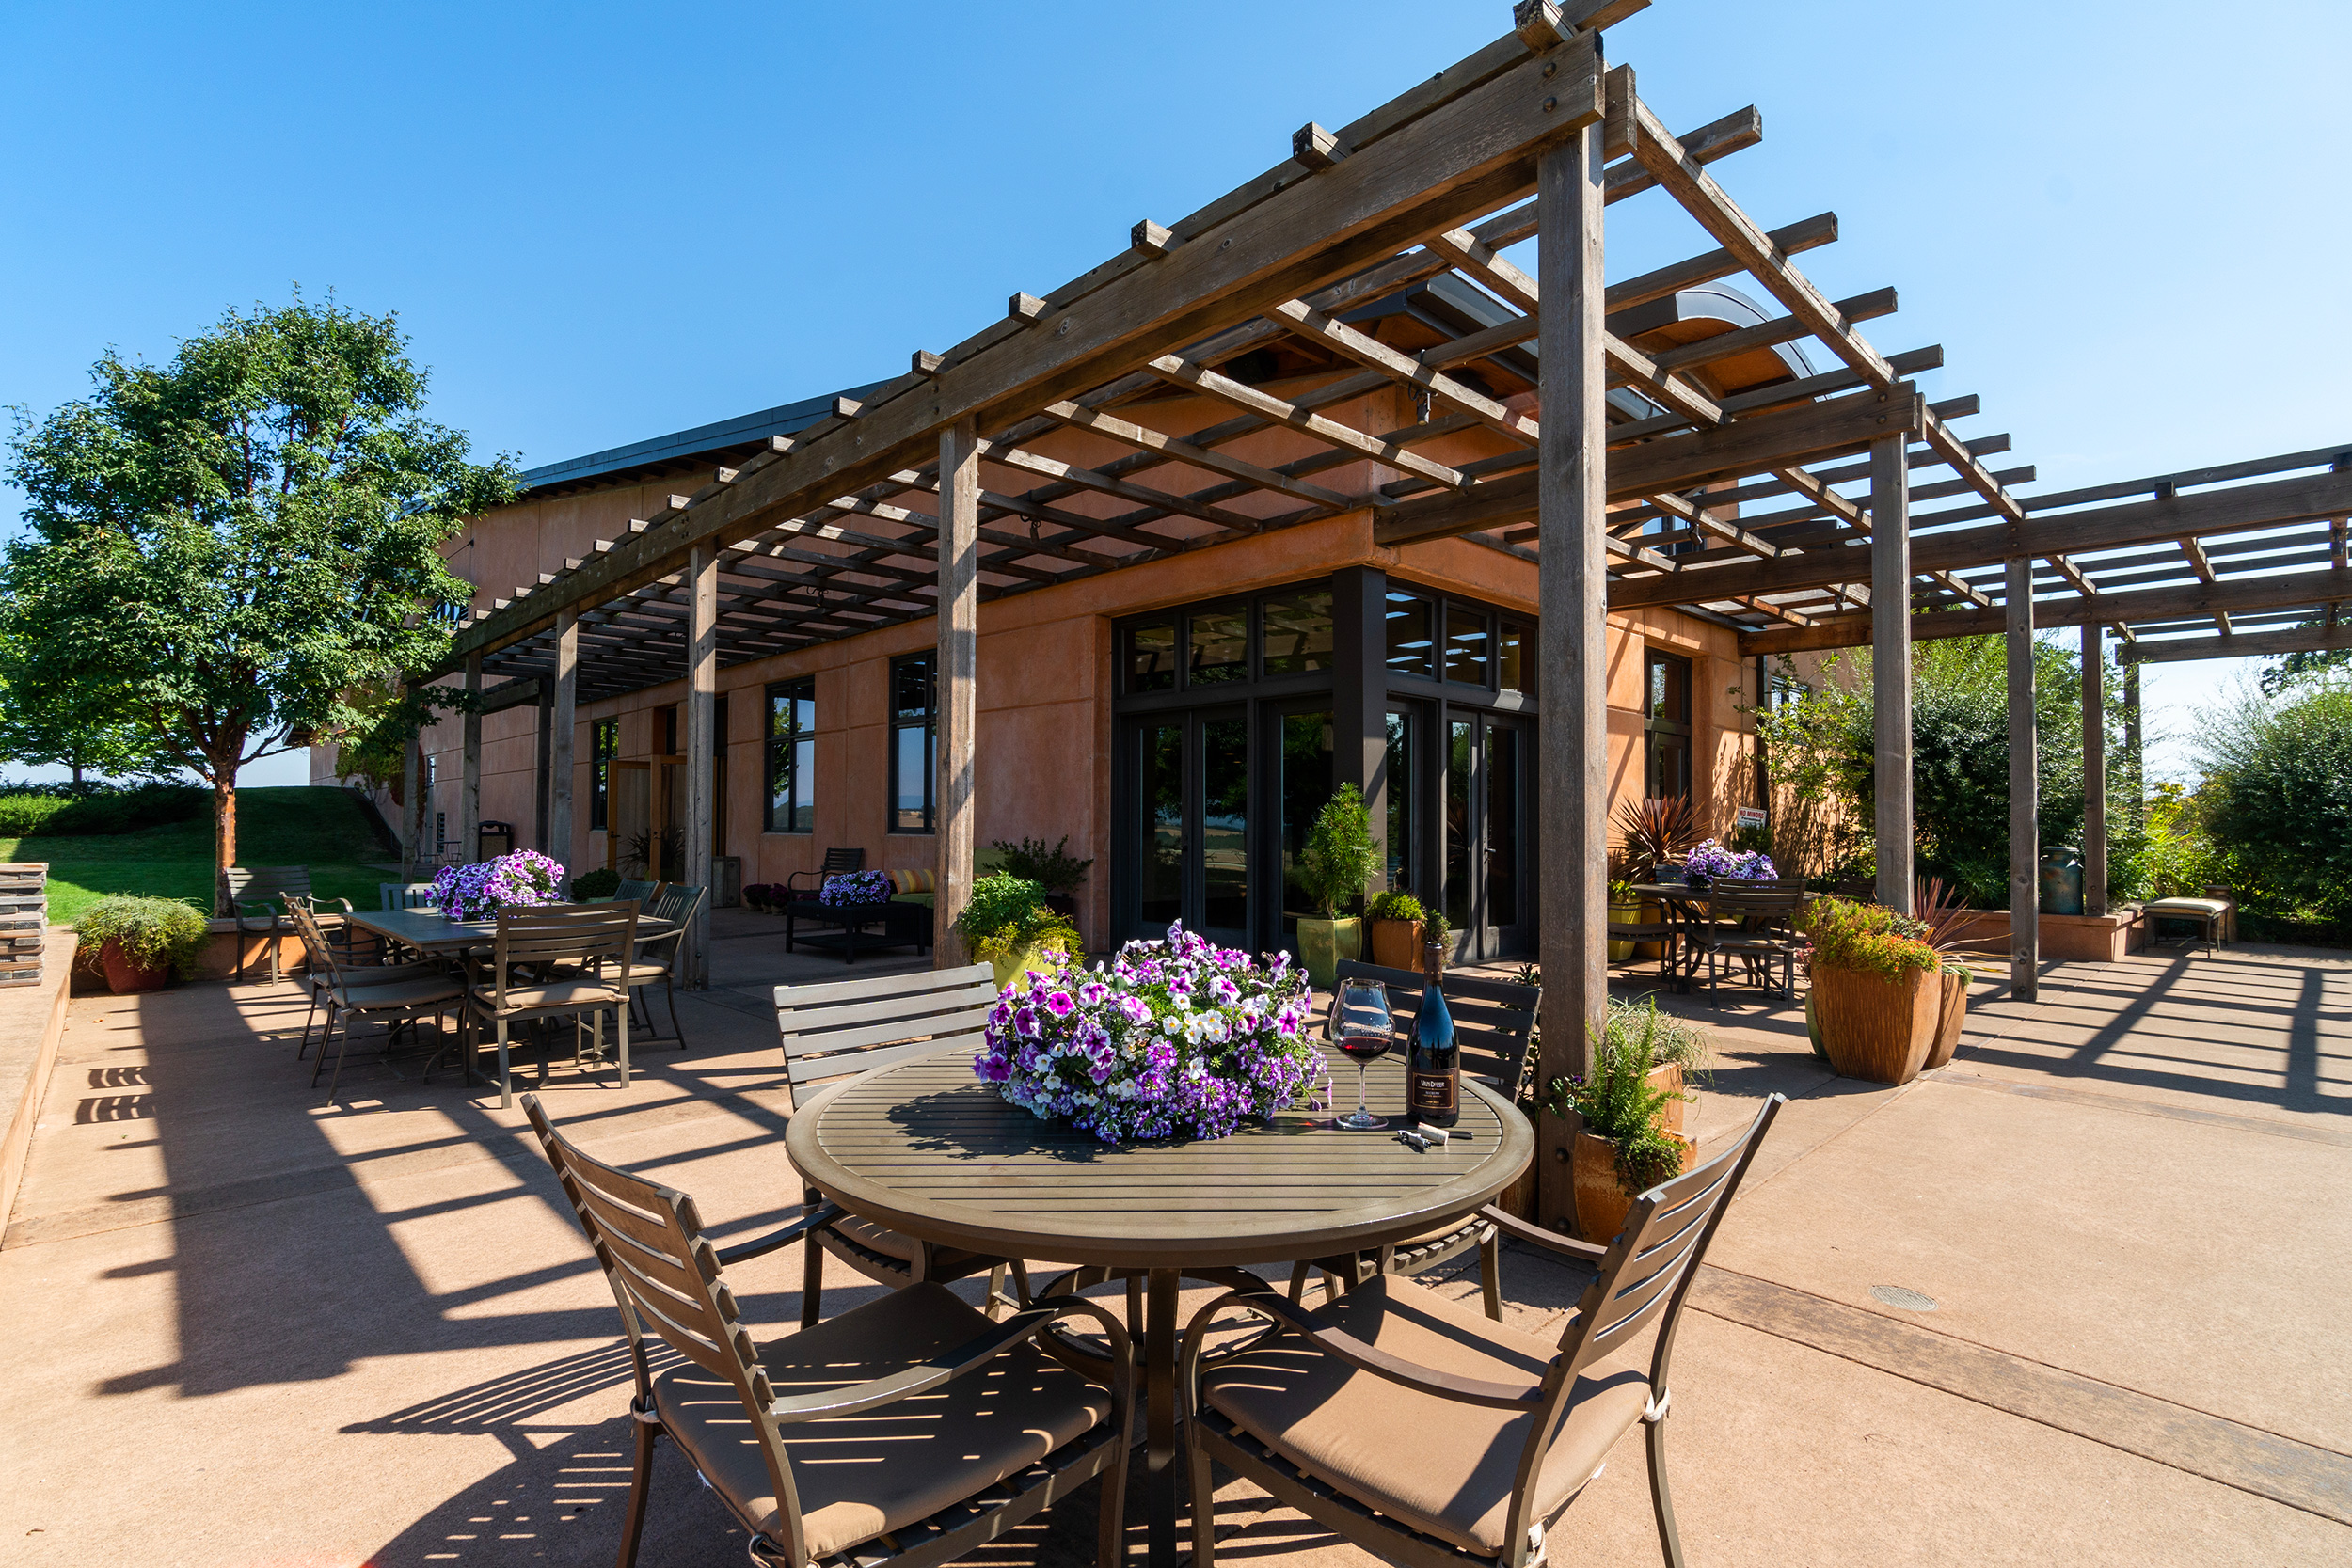 Van Duzer Vineyards Tasting Room Patio